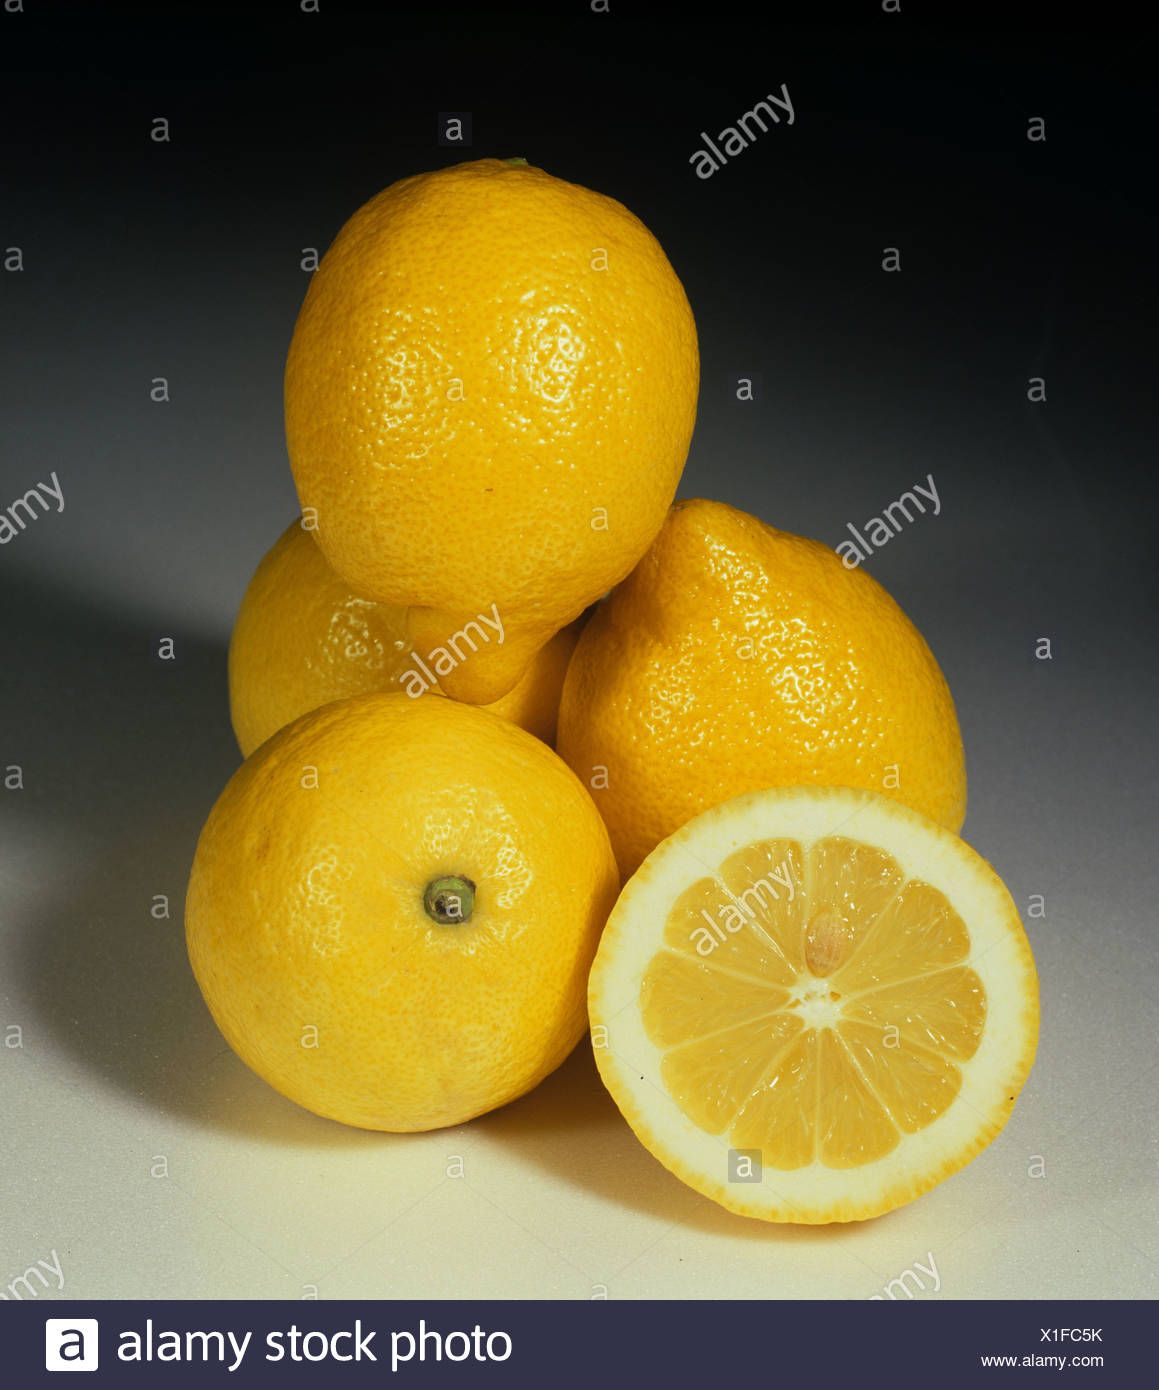 Whole and section group of citrus fruit lemon variety Fino - Stock Image